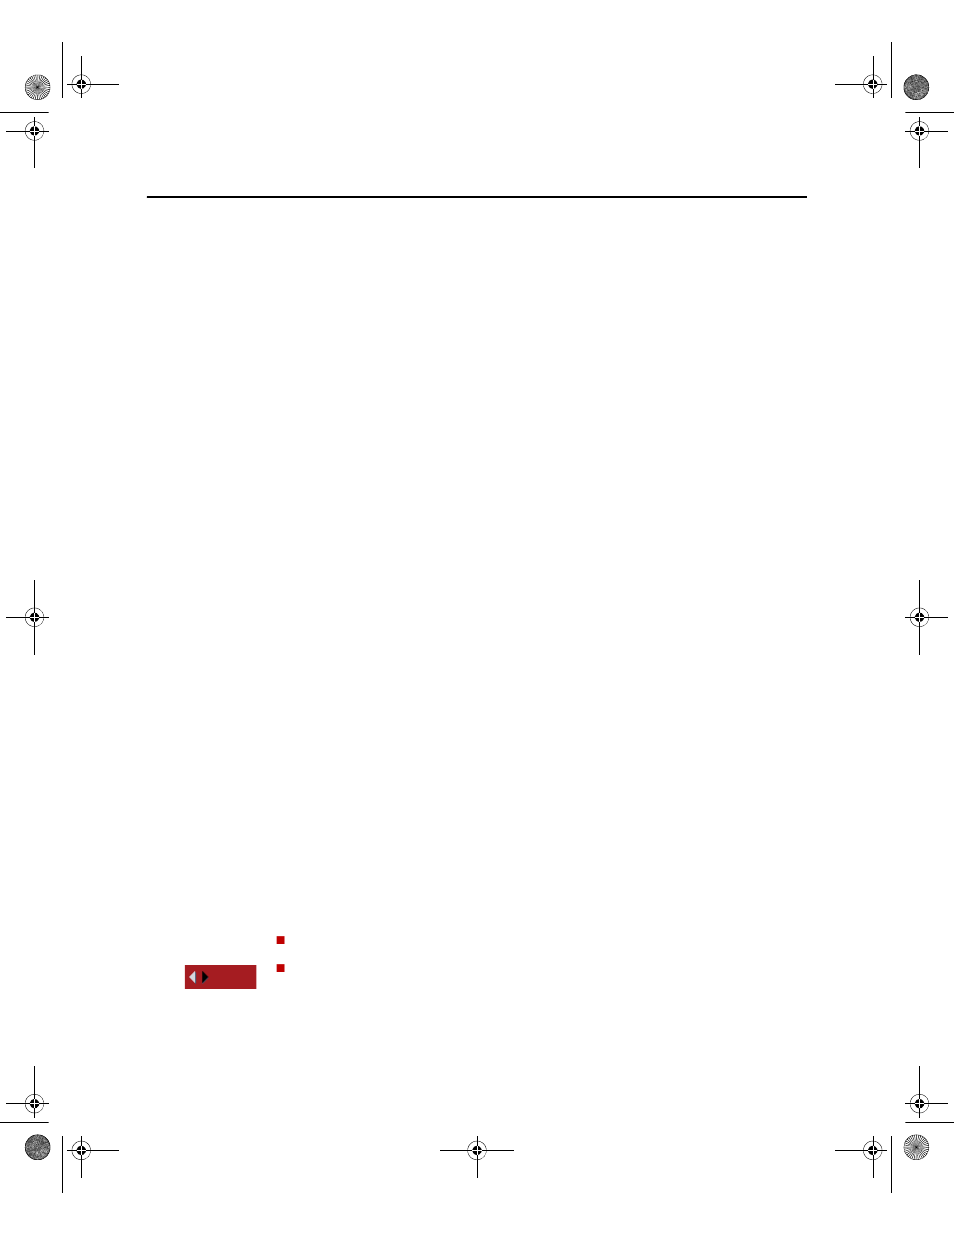 Factorytalk viewpoint machine edition text fonts, Getting